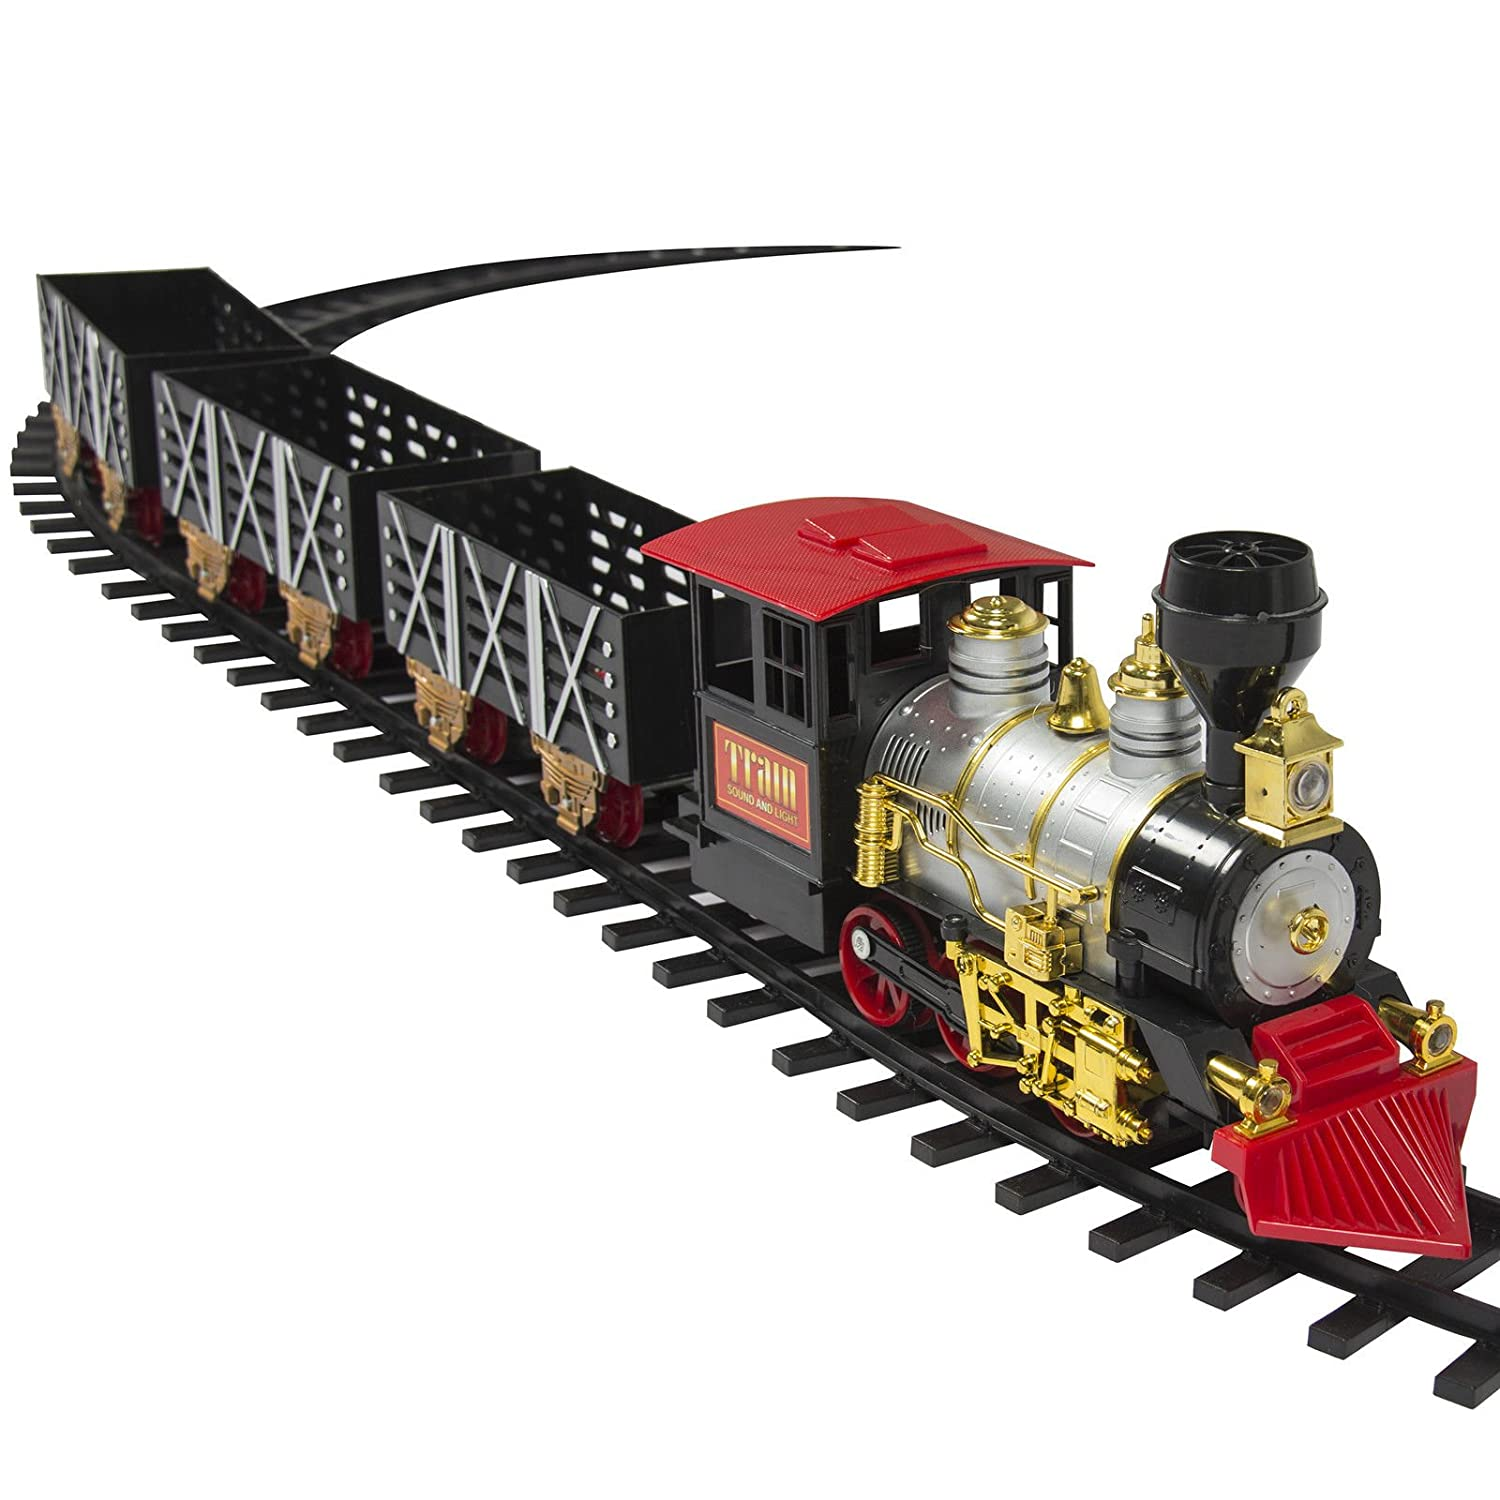 Amazon.com: Train Set Kids W/ Real Smoke, Music, Lights Battery ...